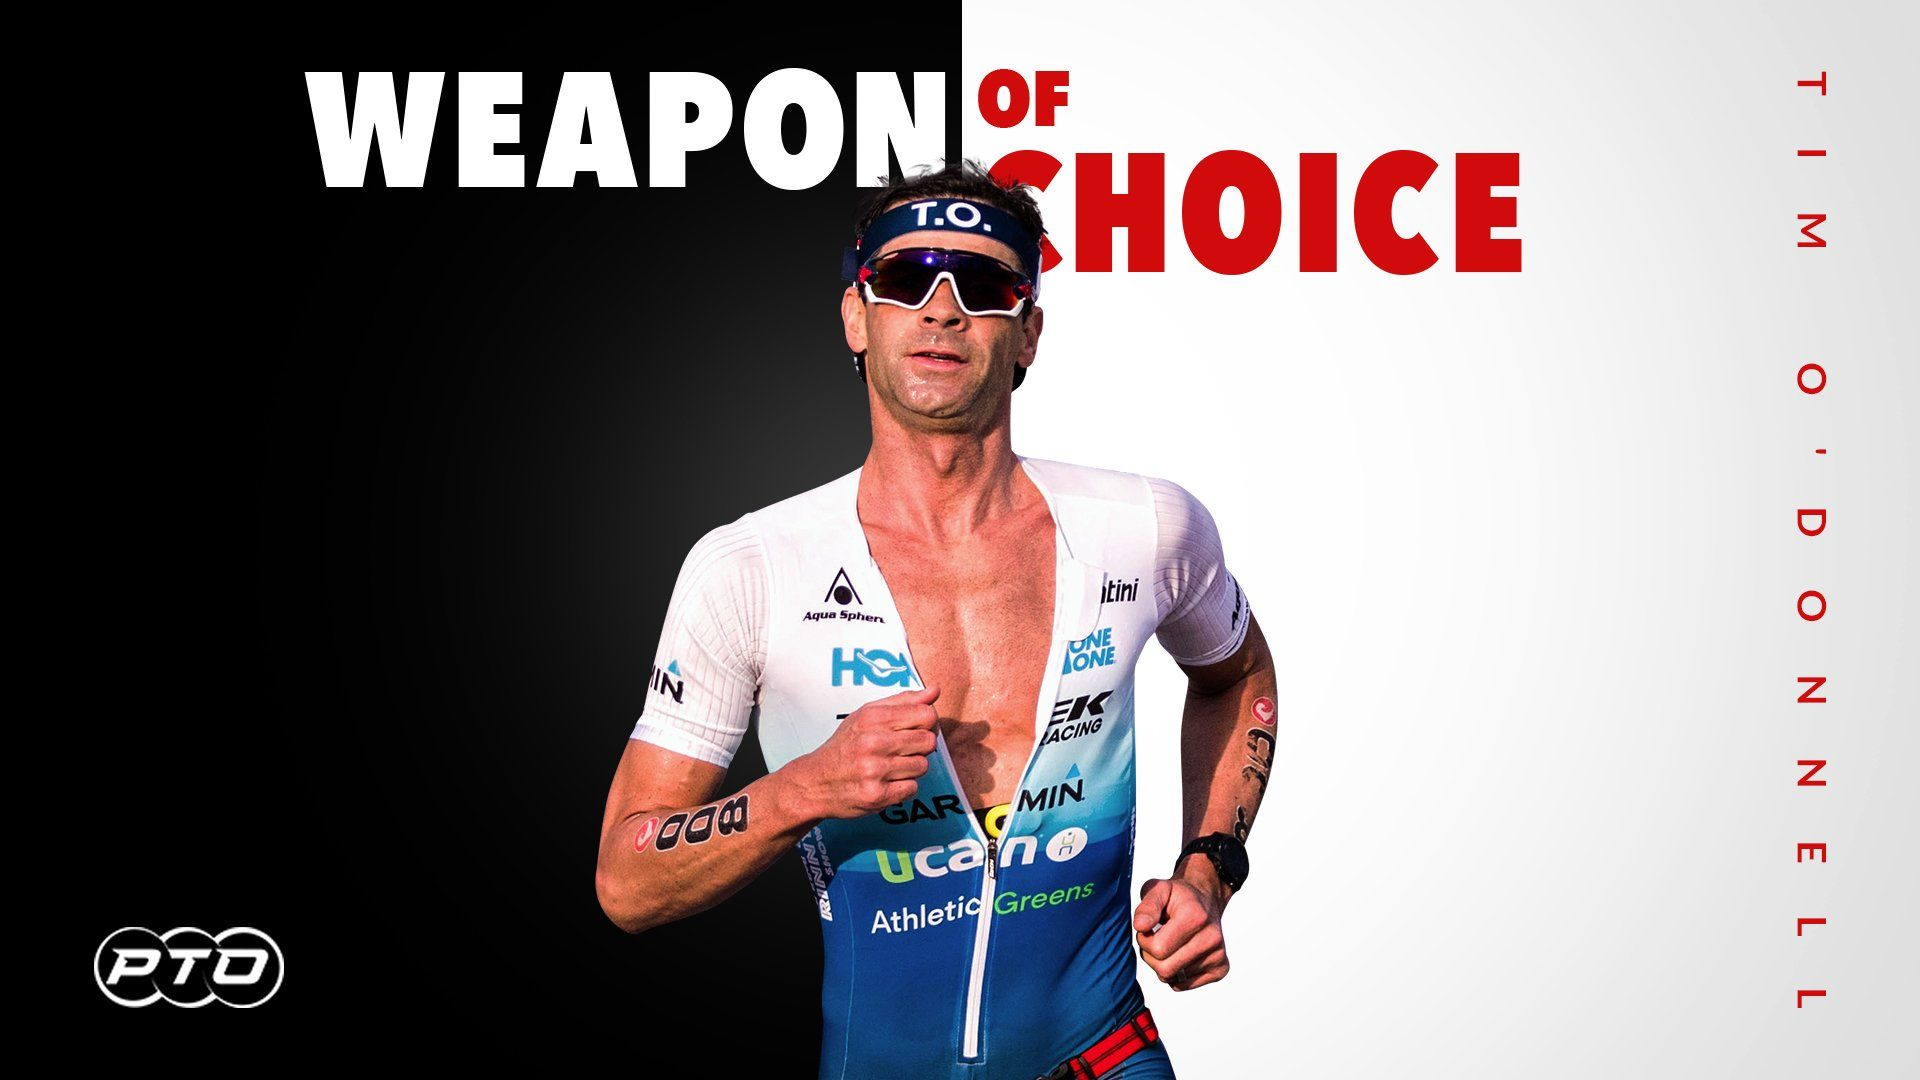 Weapon of Choice    Tim O'Donnell